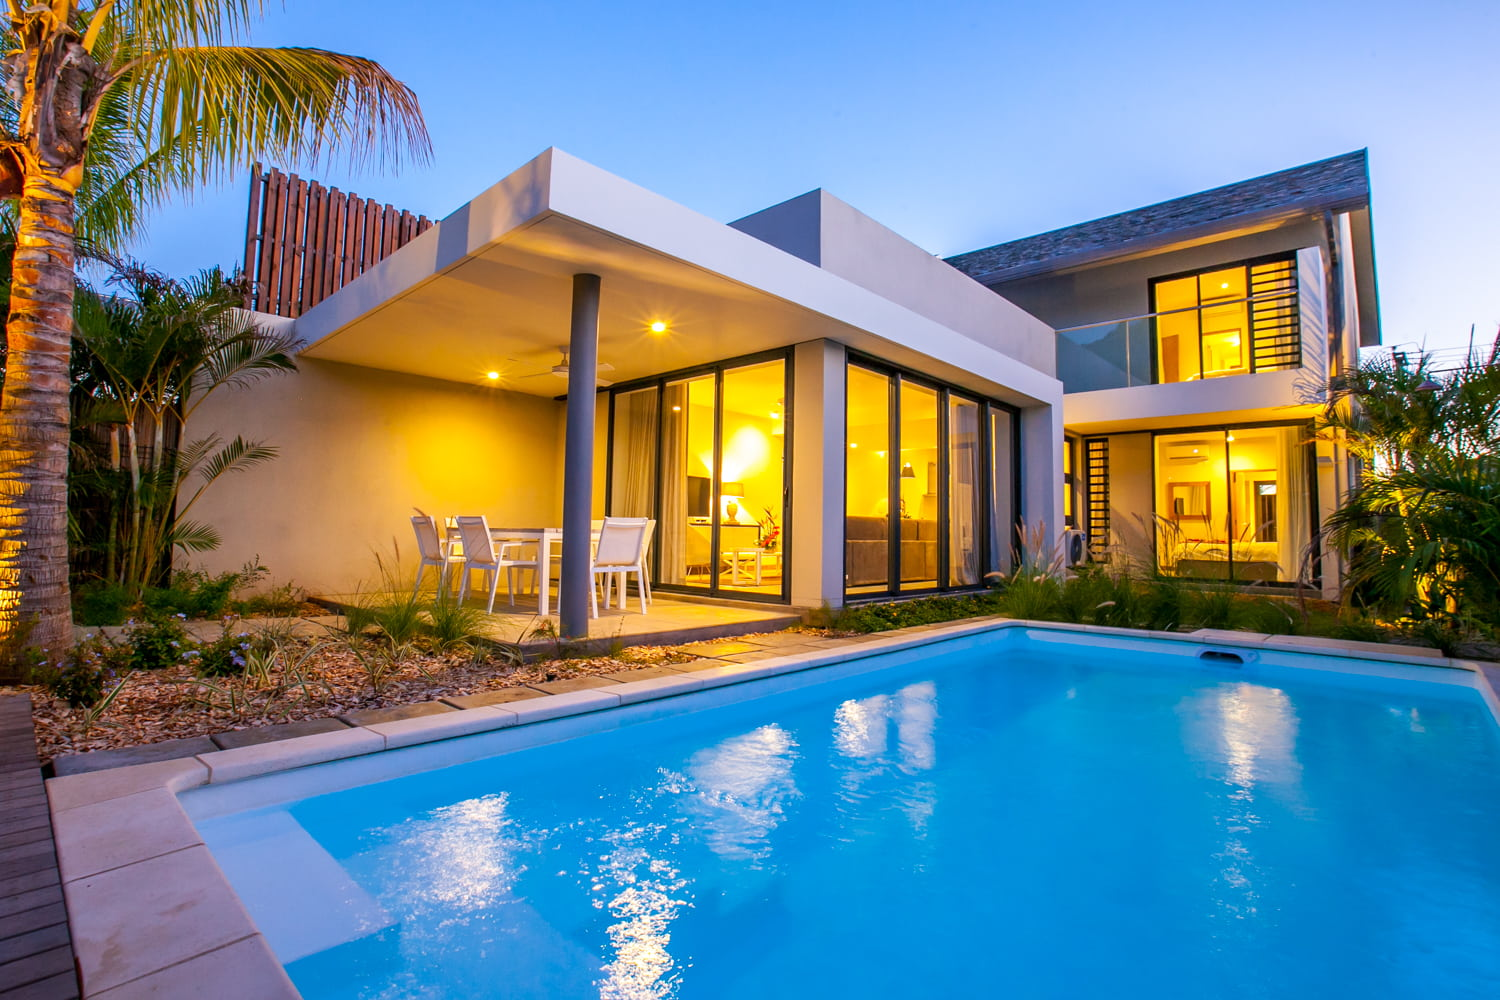 Why You Invest in Luxury Villas?